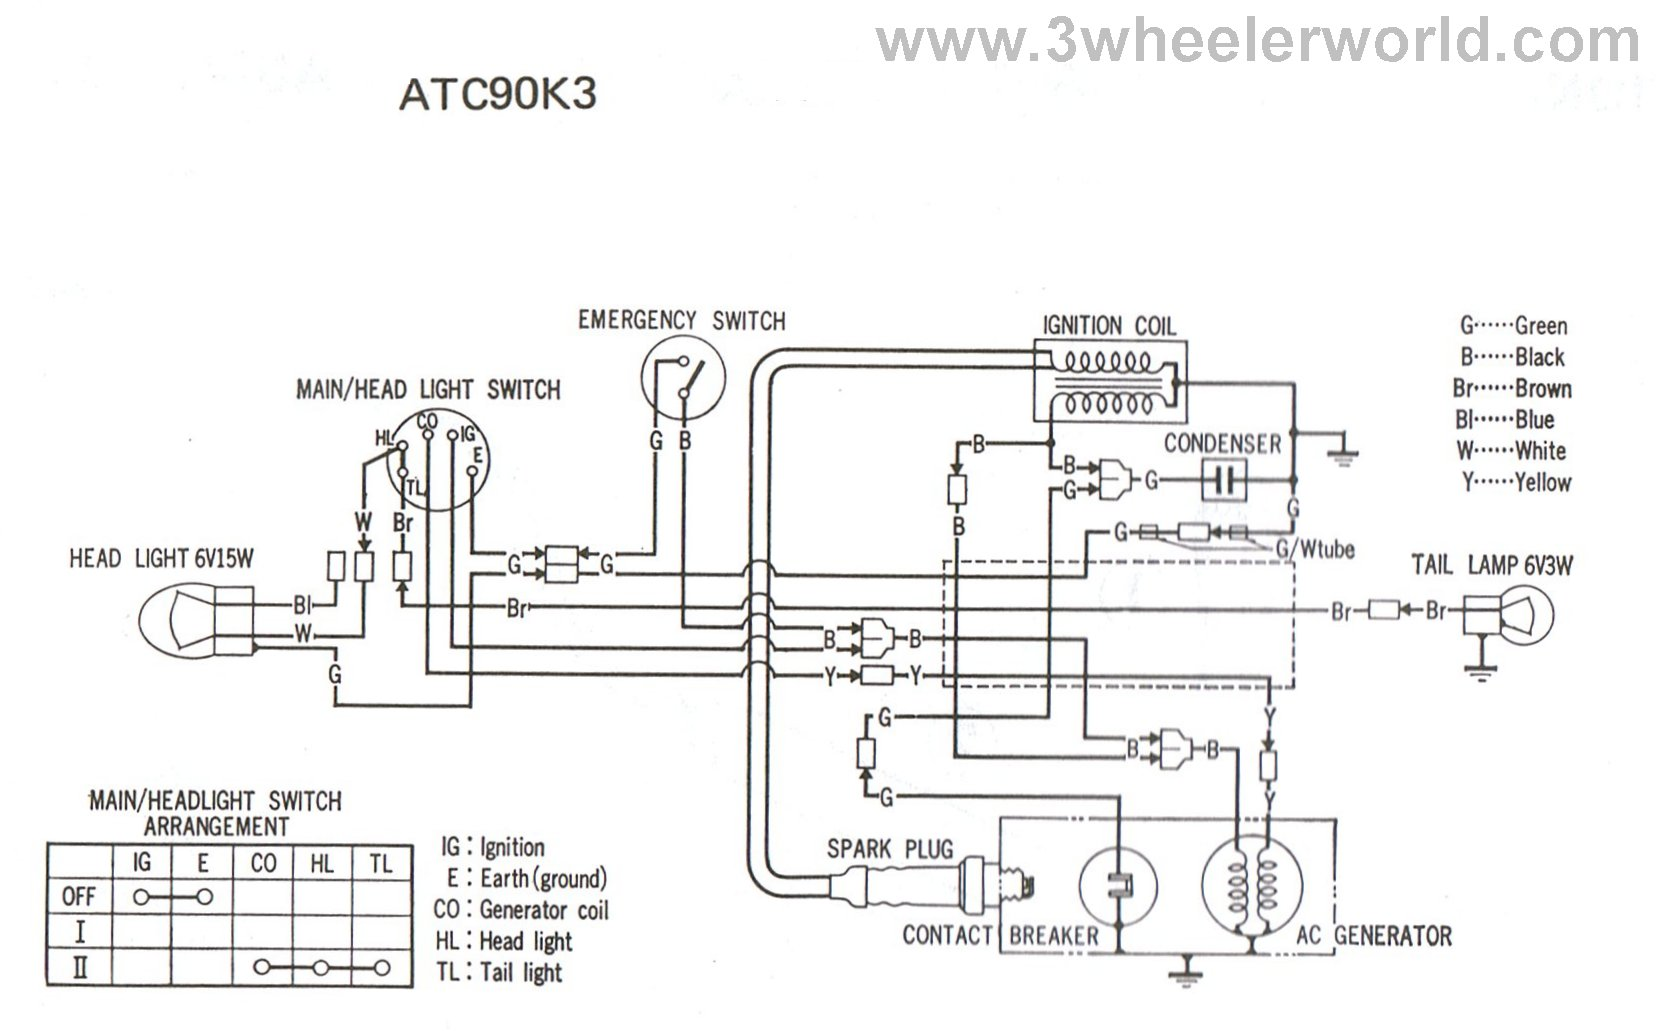 ATC90K3HM wiring diagrams \u2022 j squared co 1999 arctic cat 400 wiring diagram at reclaimingppi.co